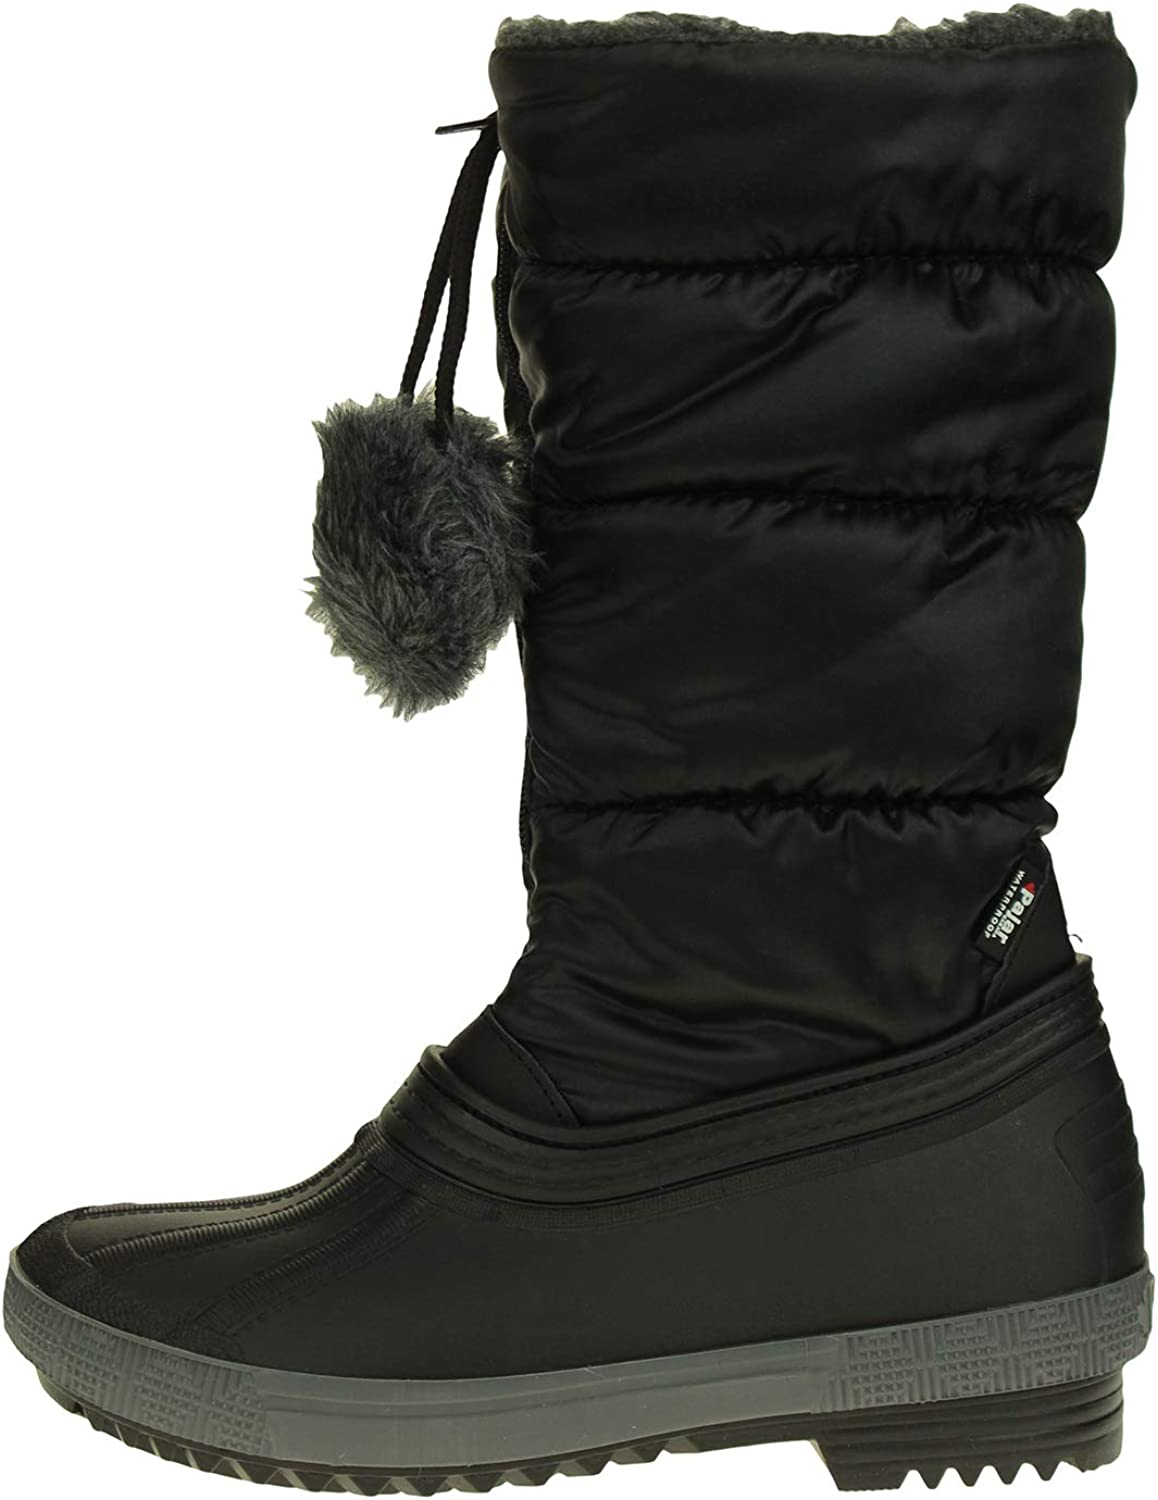 Toddler - Youth Fay Winter Snow Boot